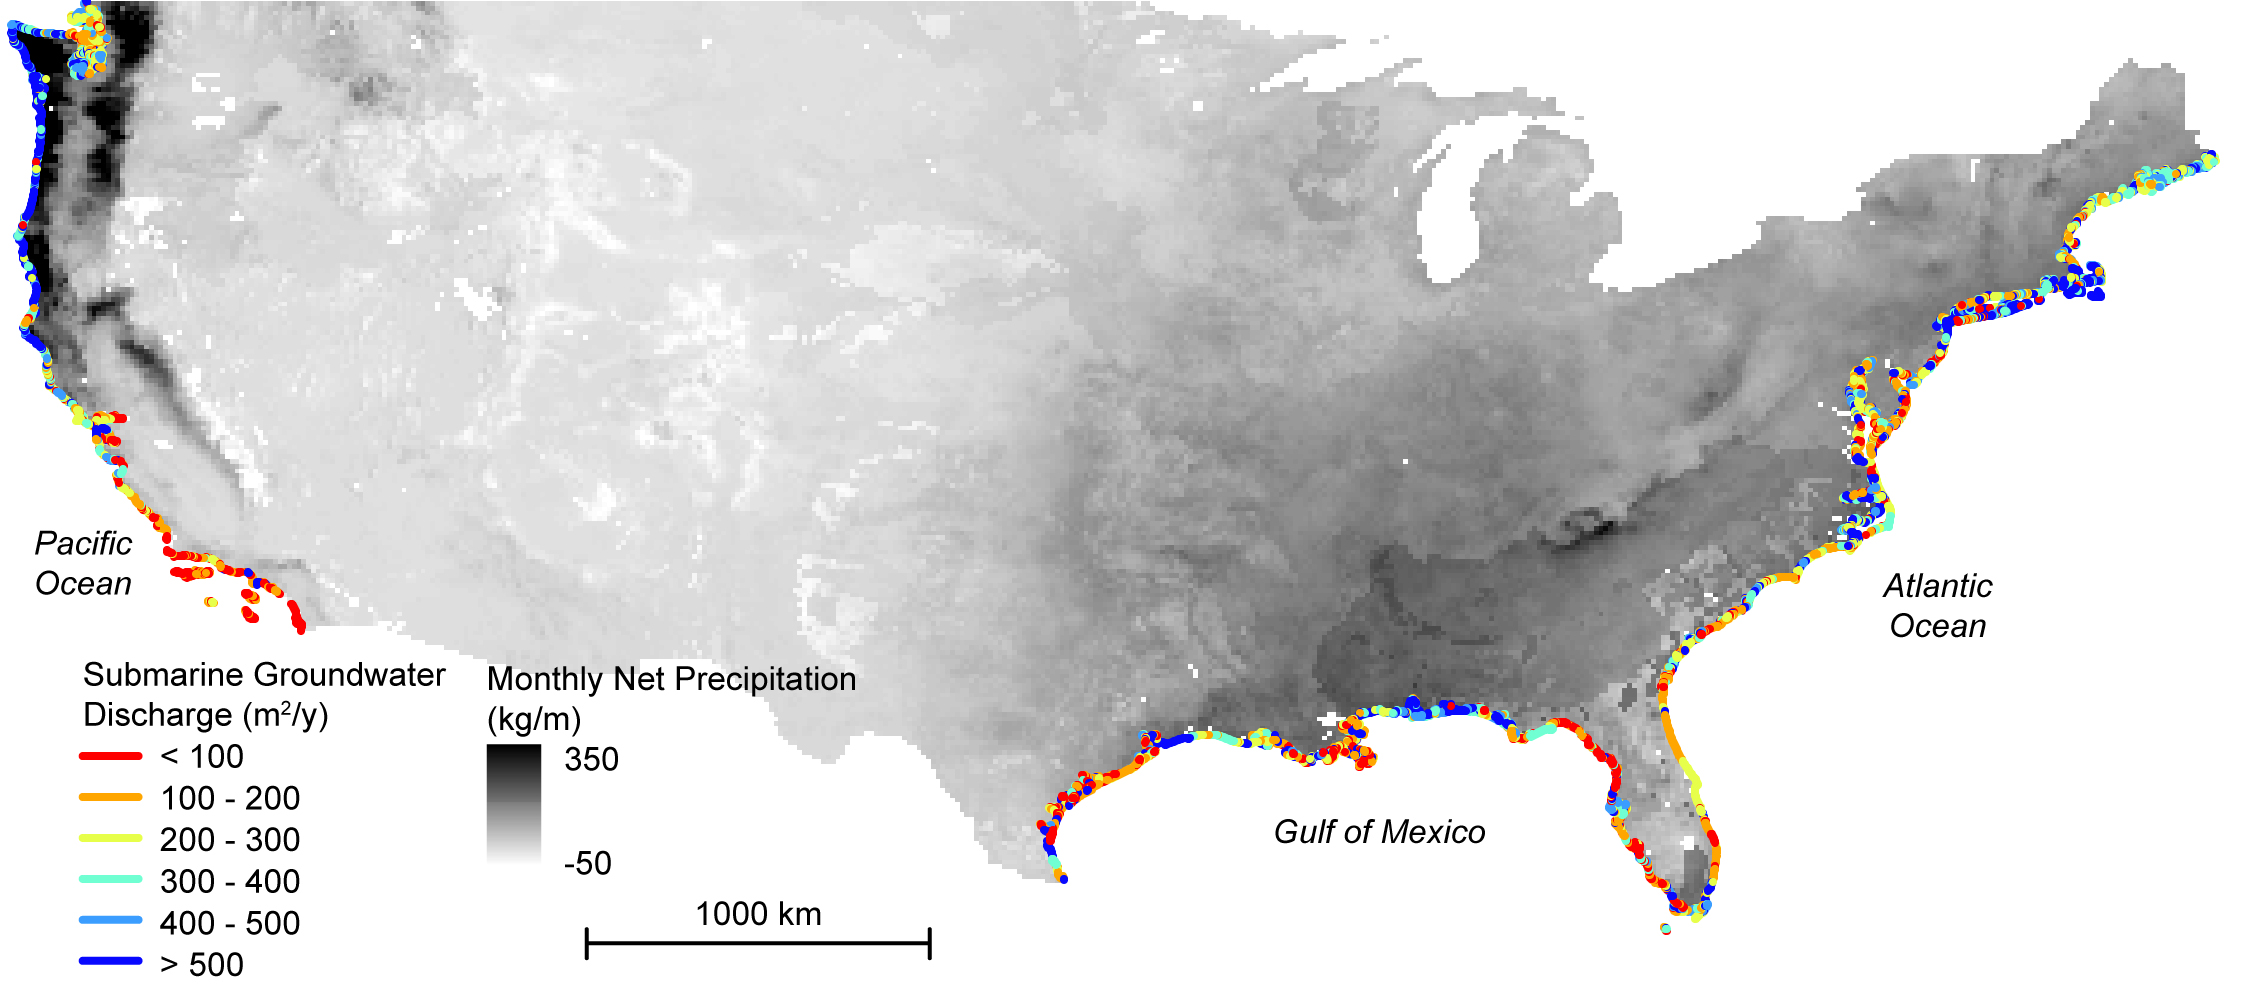 Study Maps Hidden Water Pollution In US Coastal Areas NASA - Map of water quality in us